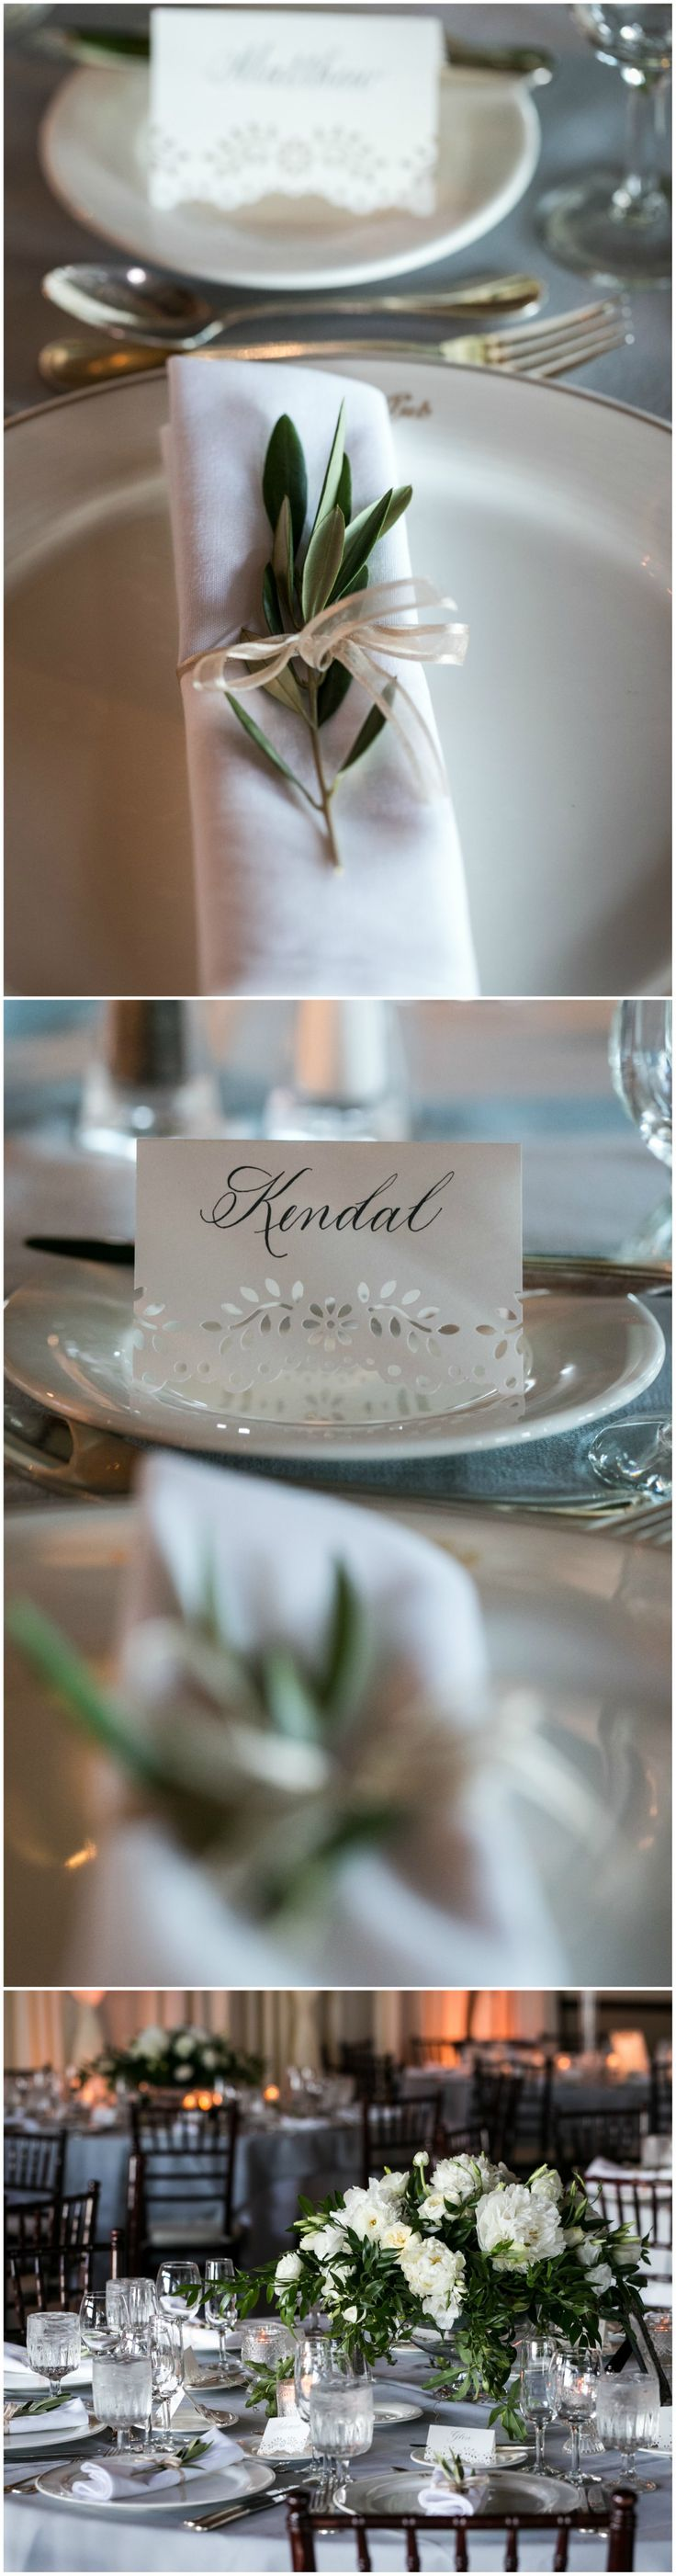 Elegant simple wedding placesettings wedding tablescape ideas